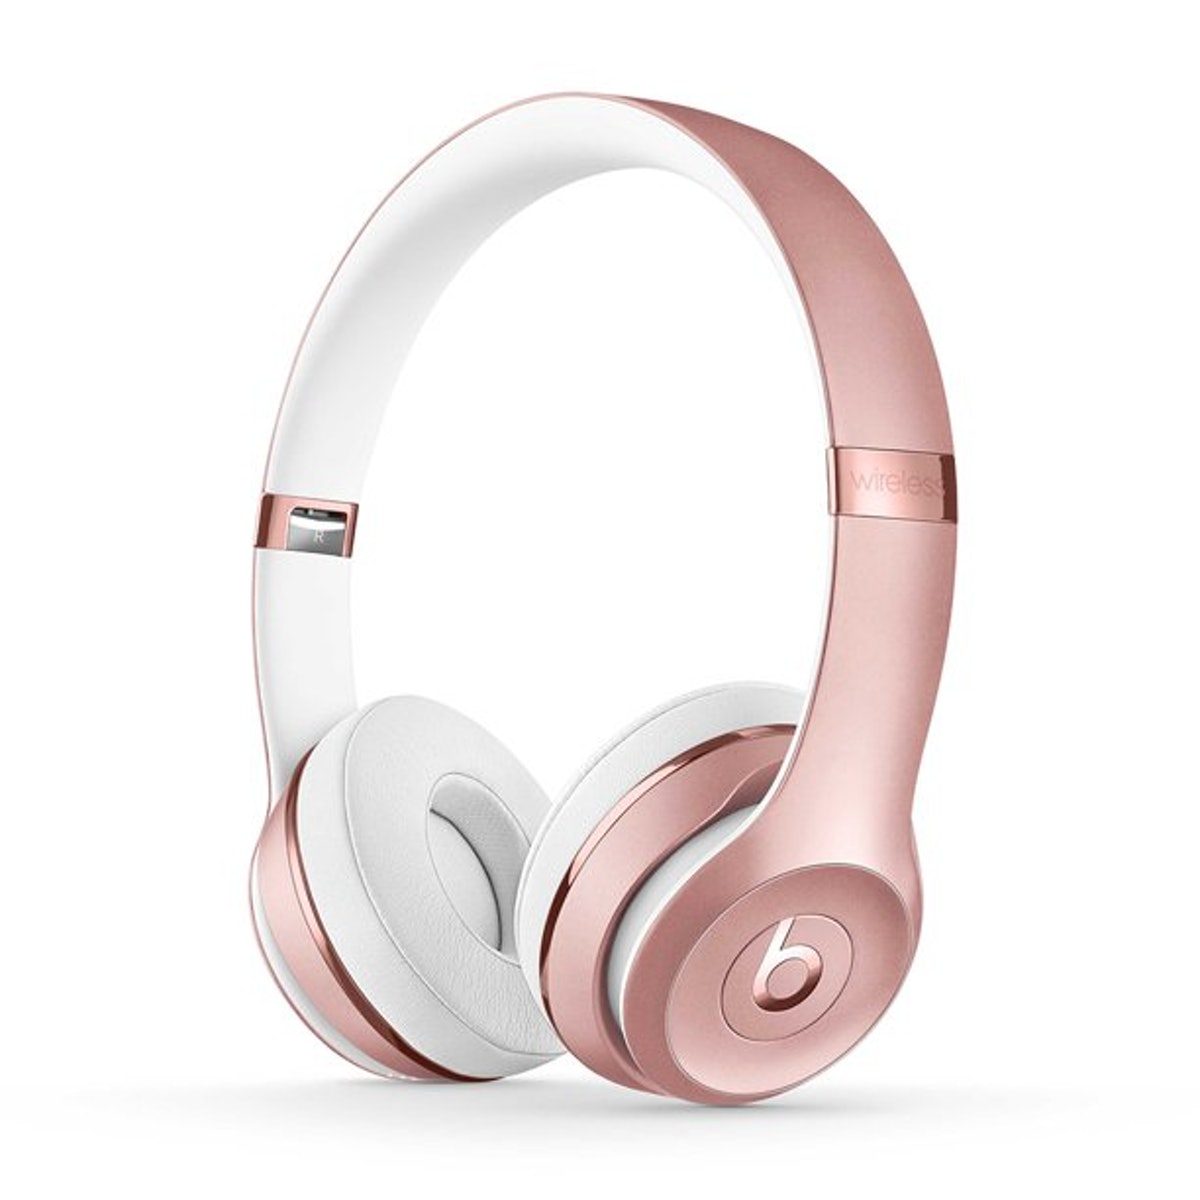 Beats Solo3 Wireless On-Ear Headphones with Apple W1 Headphone Chip - Rose Gold